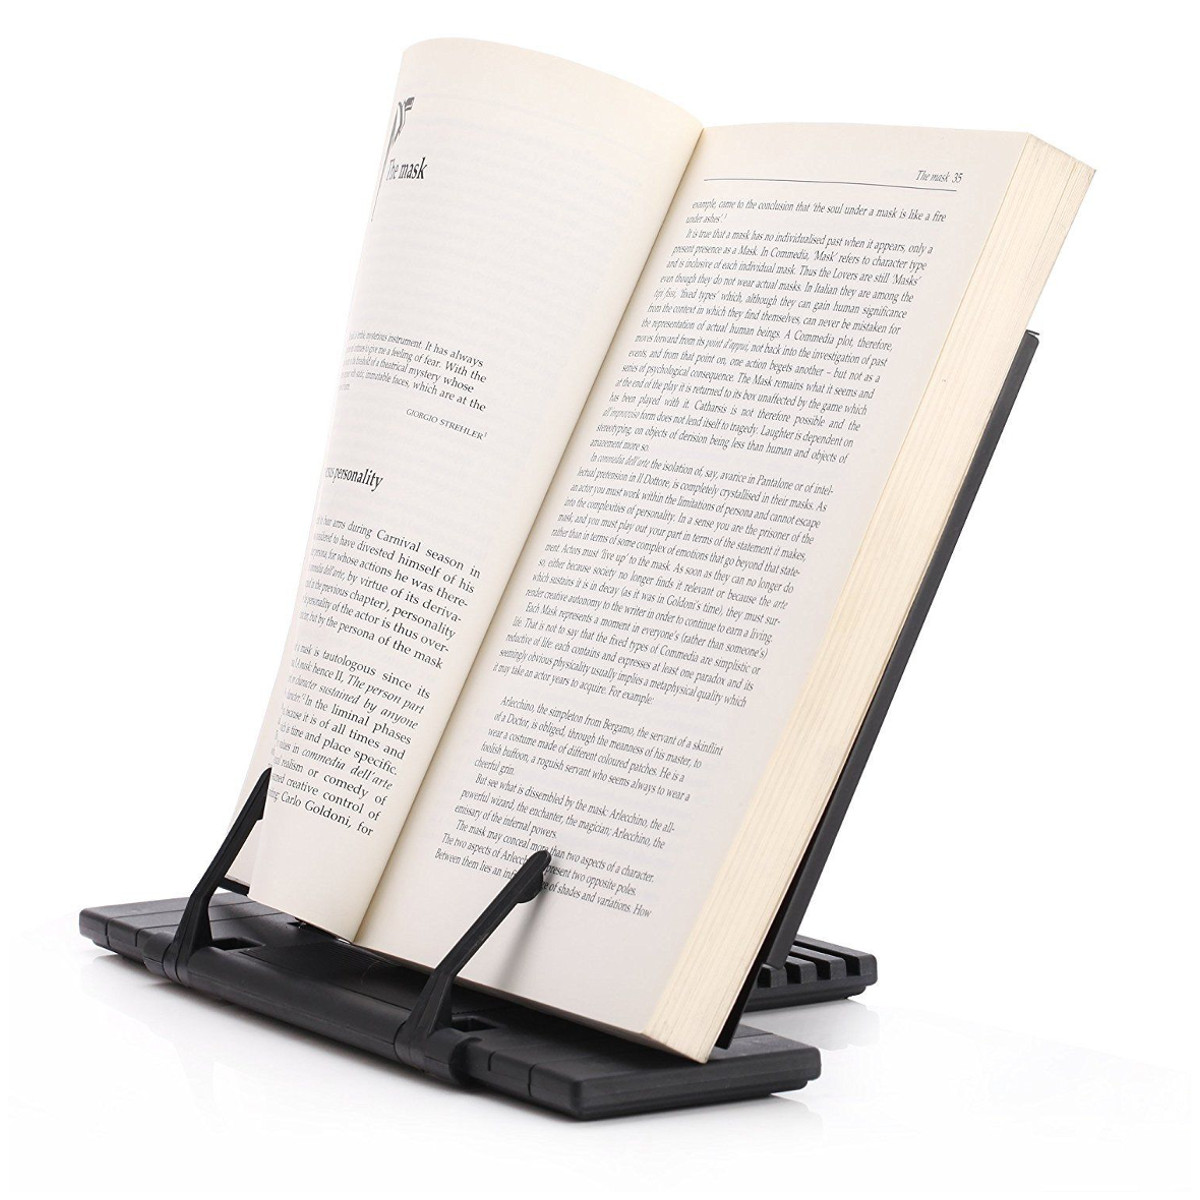 Adjustable Portable Steel Document Book Stand Holder Reading Rrame Desk Holder Tilt Bookstand Office School Supply